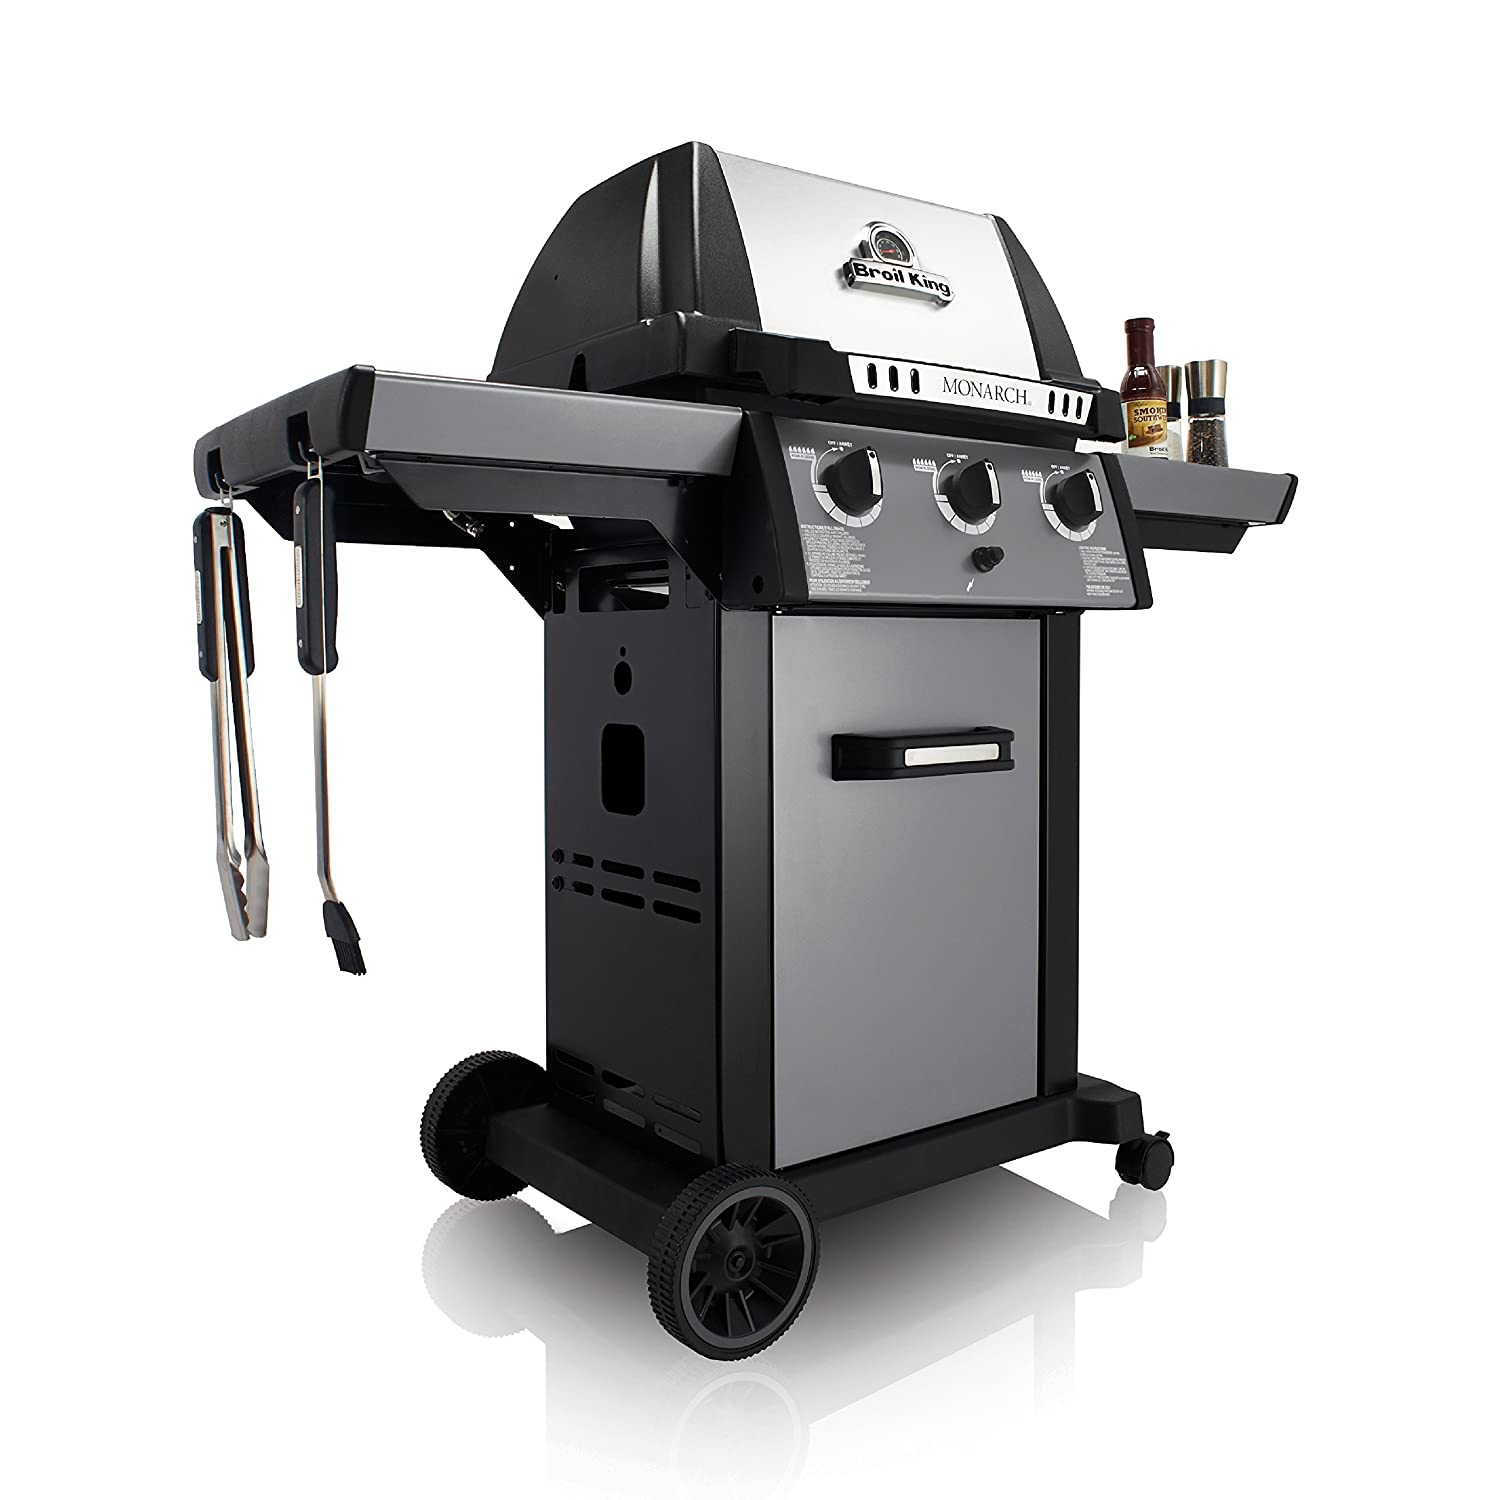 Amazon.com : Broil King 931257 Monarch 320 Natural Gas Grill : Garden & Outdoor